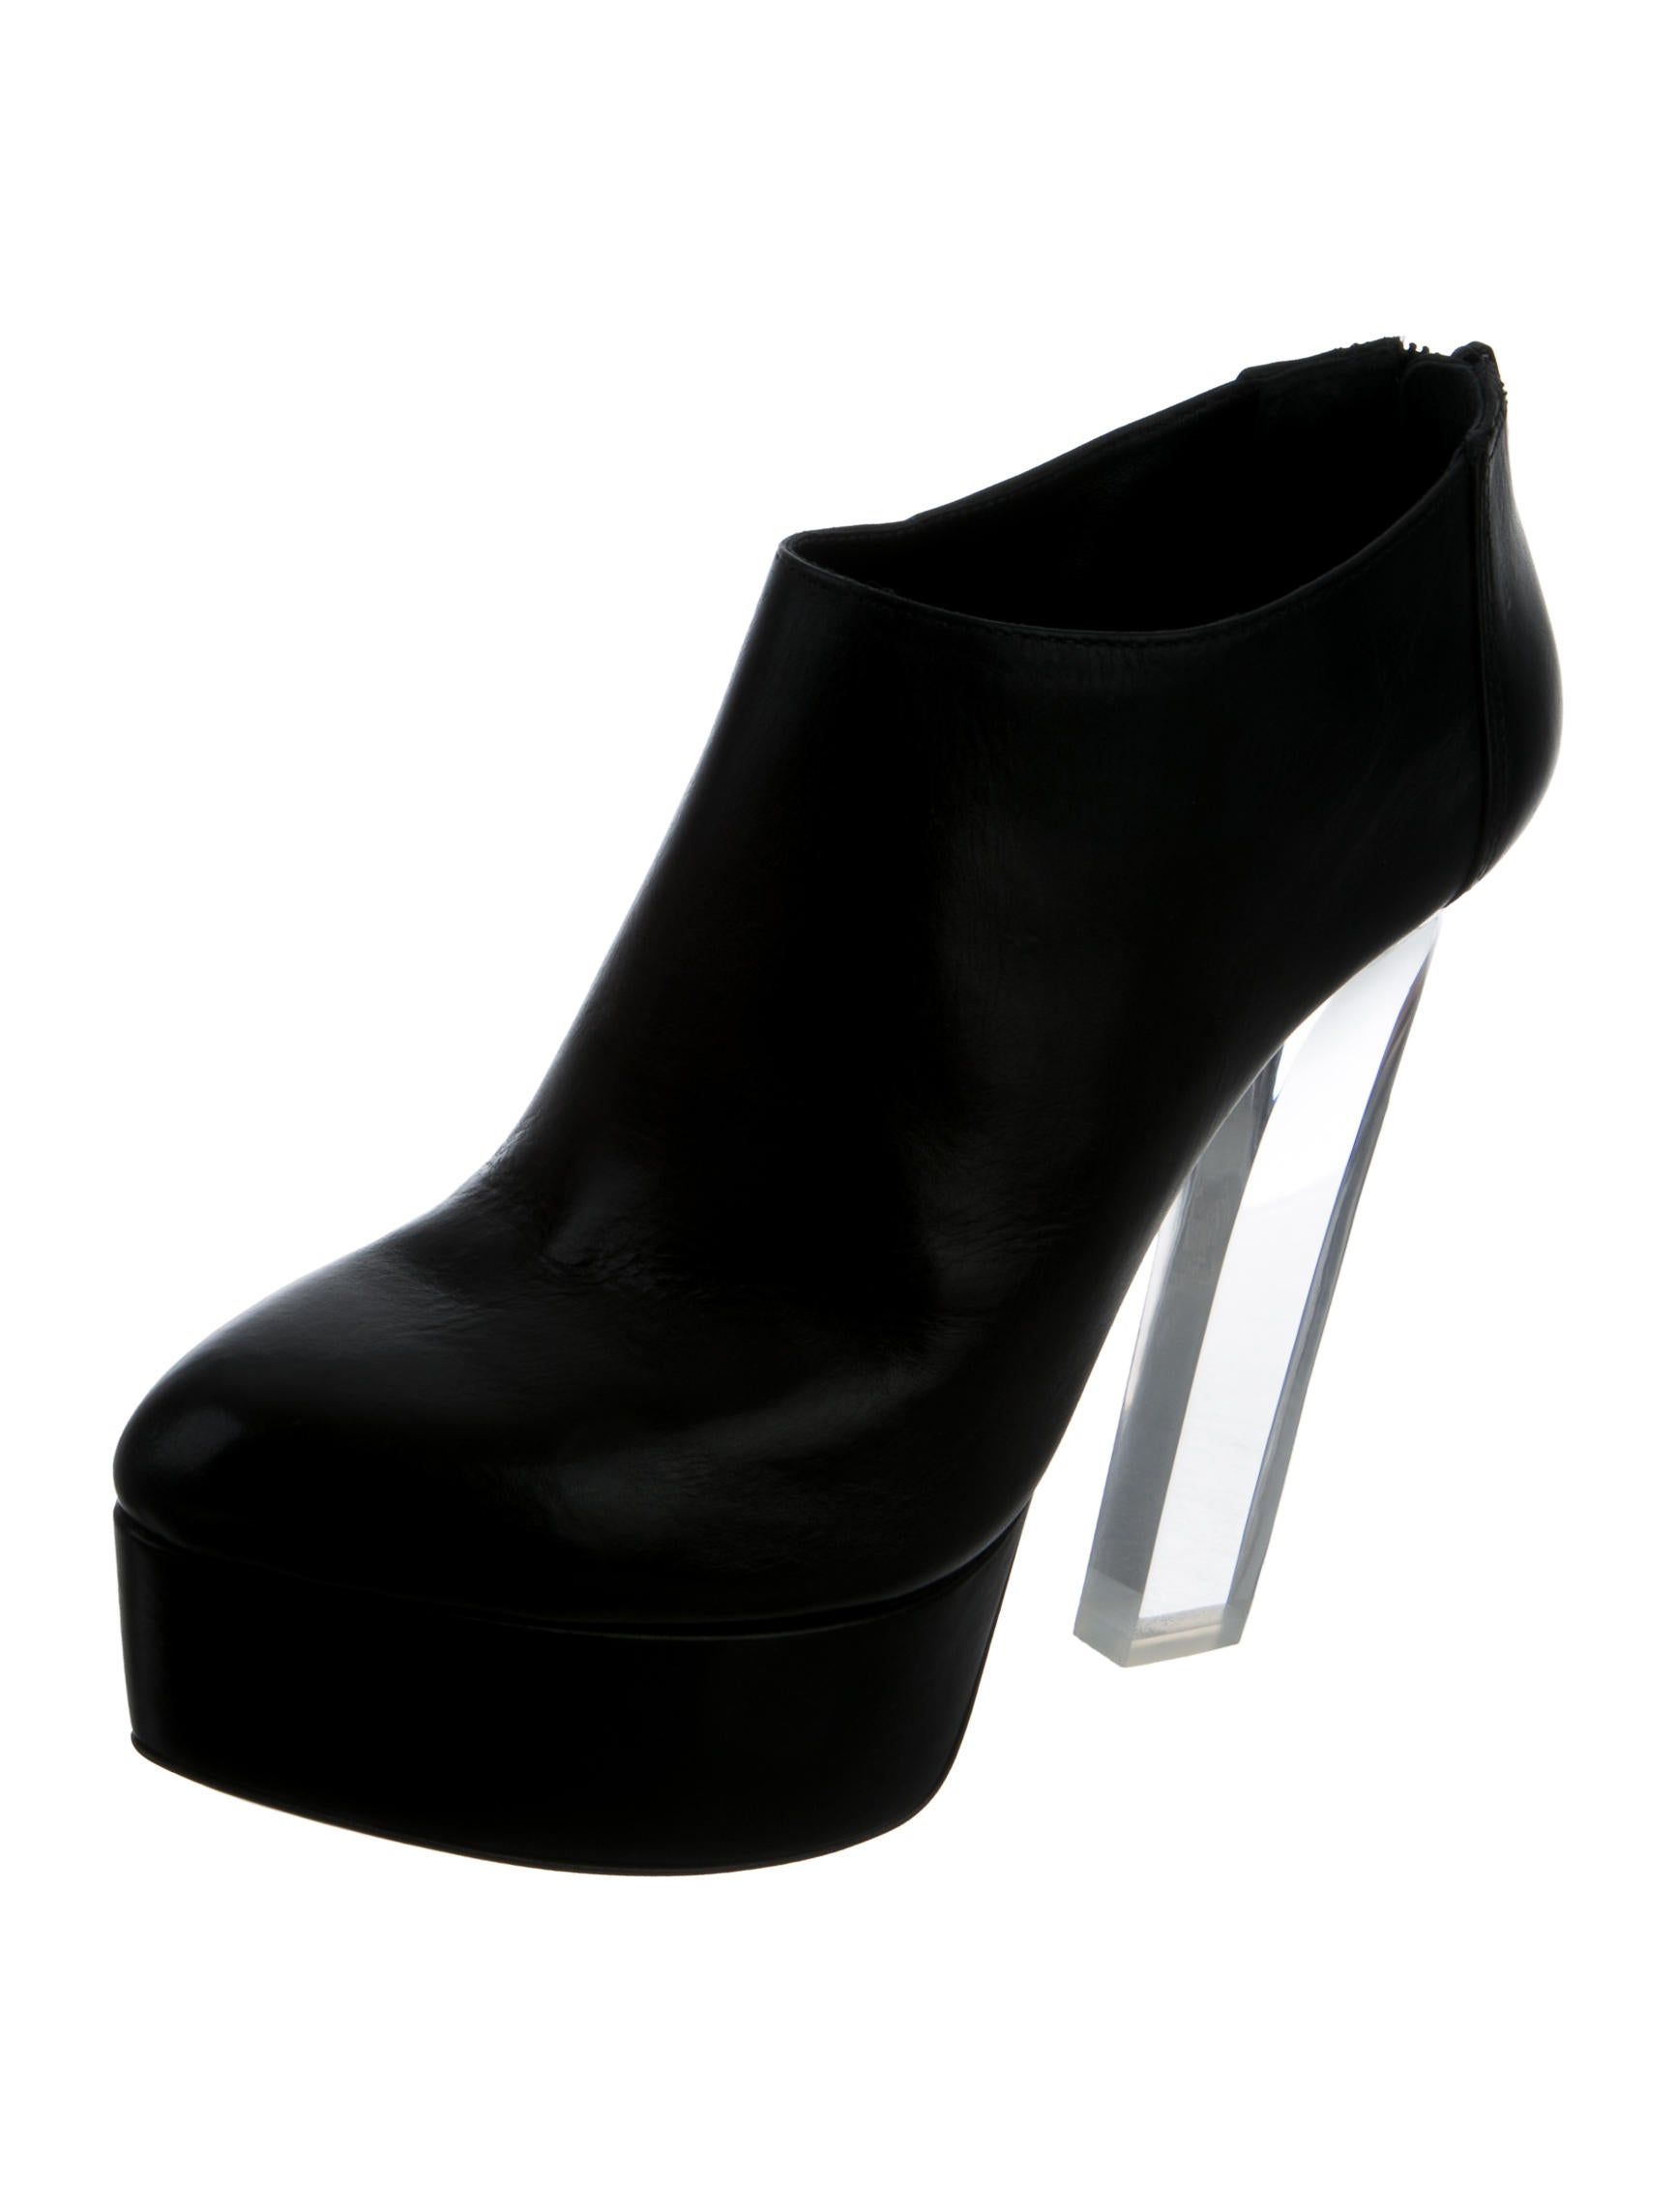 sale many kinds of buy cheap cheapest price Ruthie Davis Eva Platform Booties w/ Tags PGNWup0